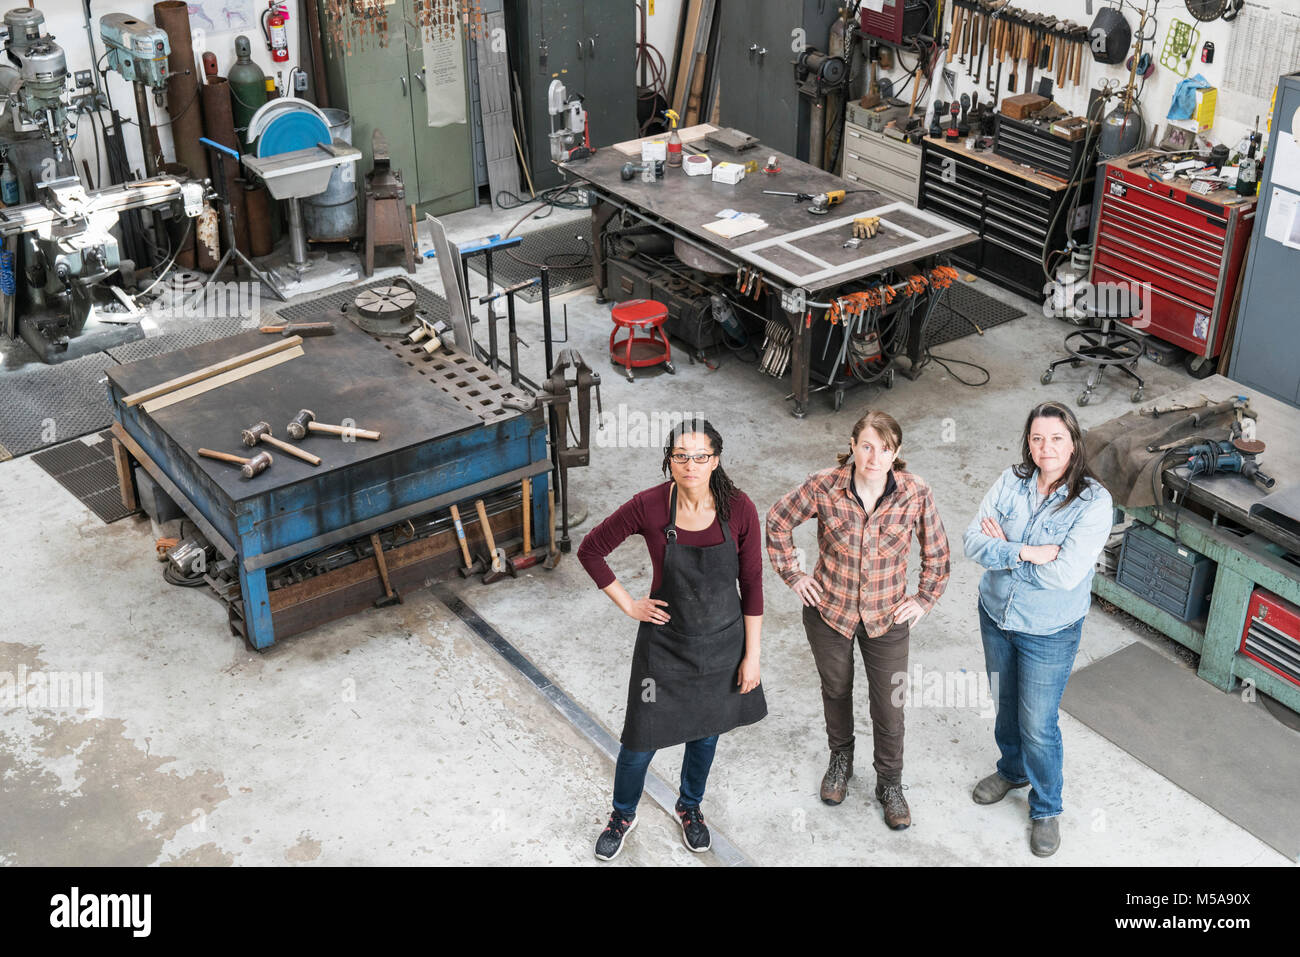 High angle view of three women standing in metal workshop, looking at camera. - Stock Image